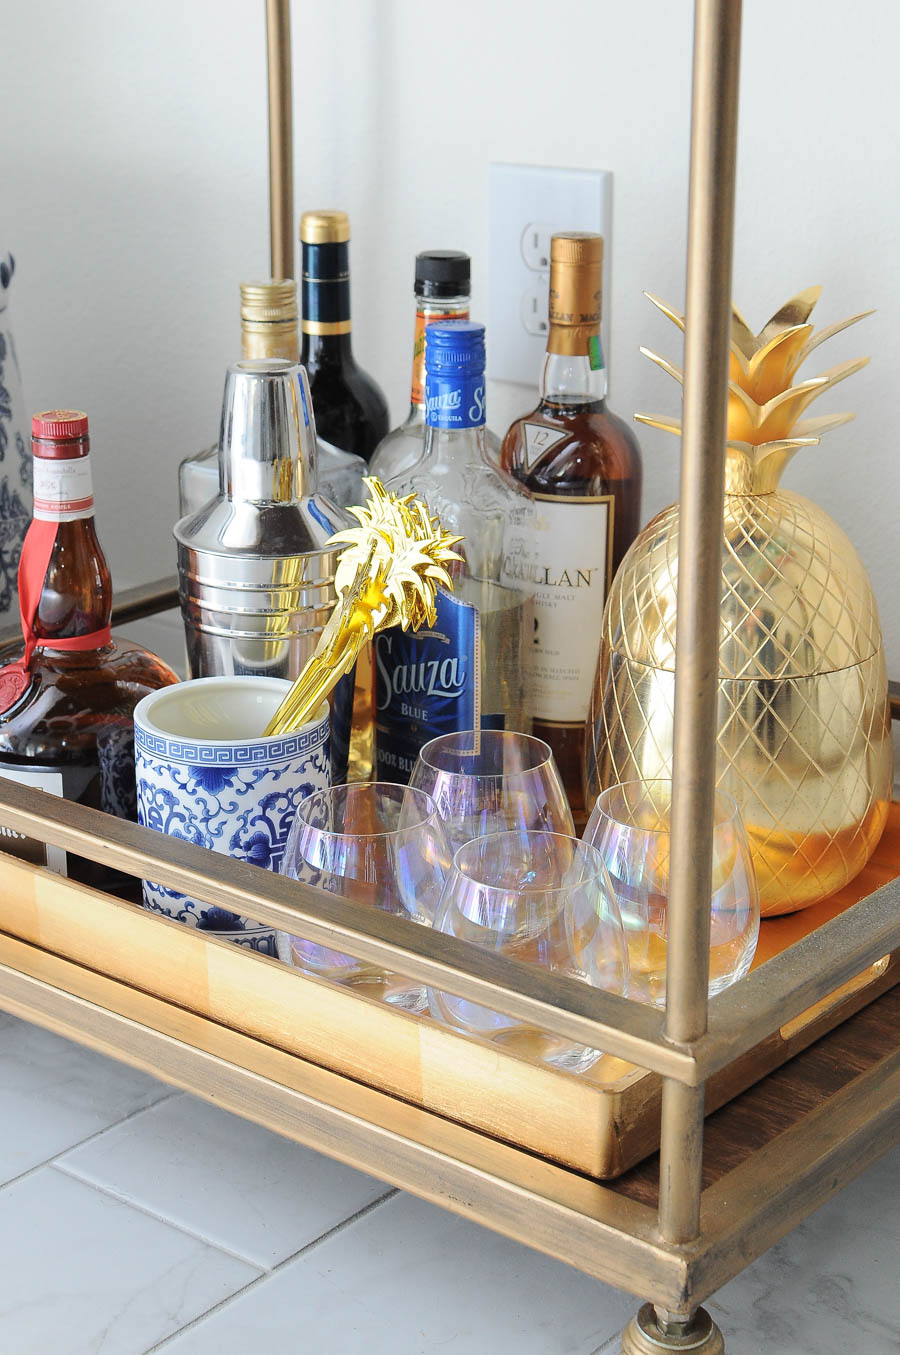 Spring bar cart decor styling ideas- florals, candles, liquor, and lots of chic and glam accents.